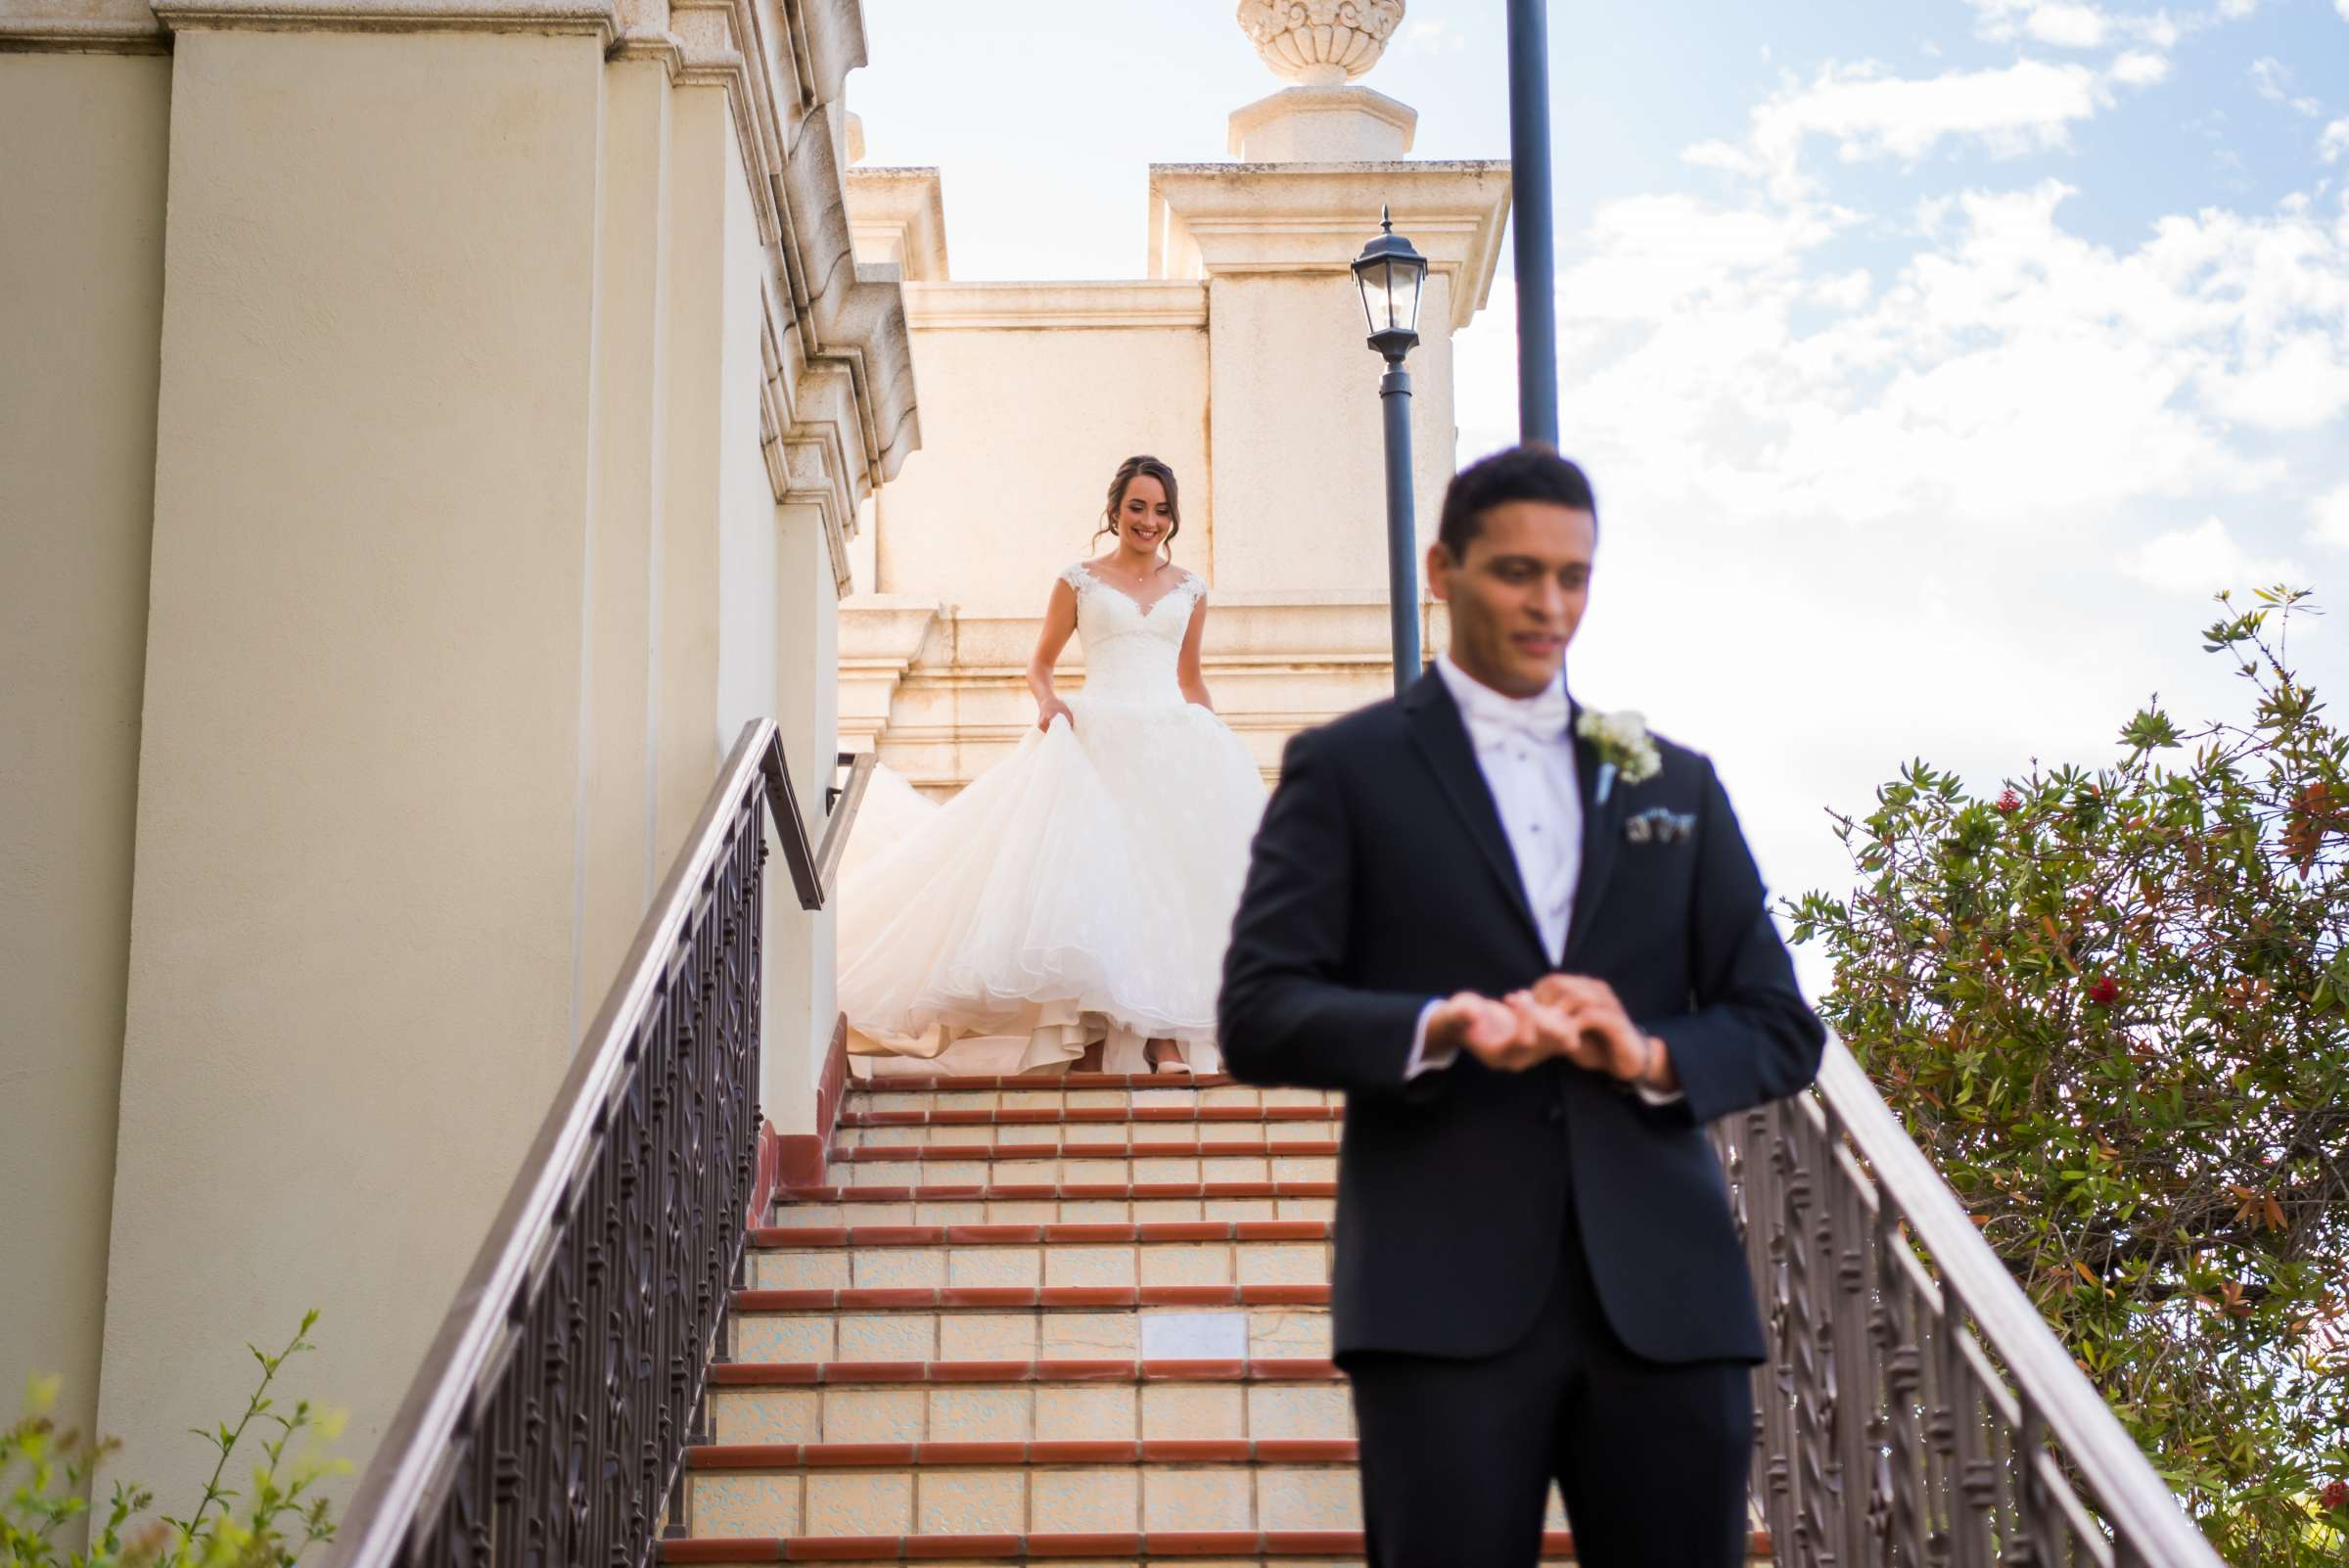 The Immaculata Wedding, Arianna and Jonah Wedding Photo #60 by True Photography